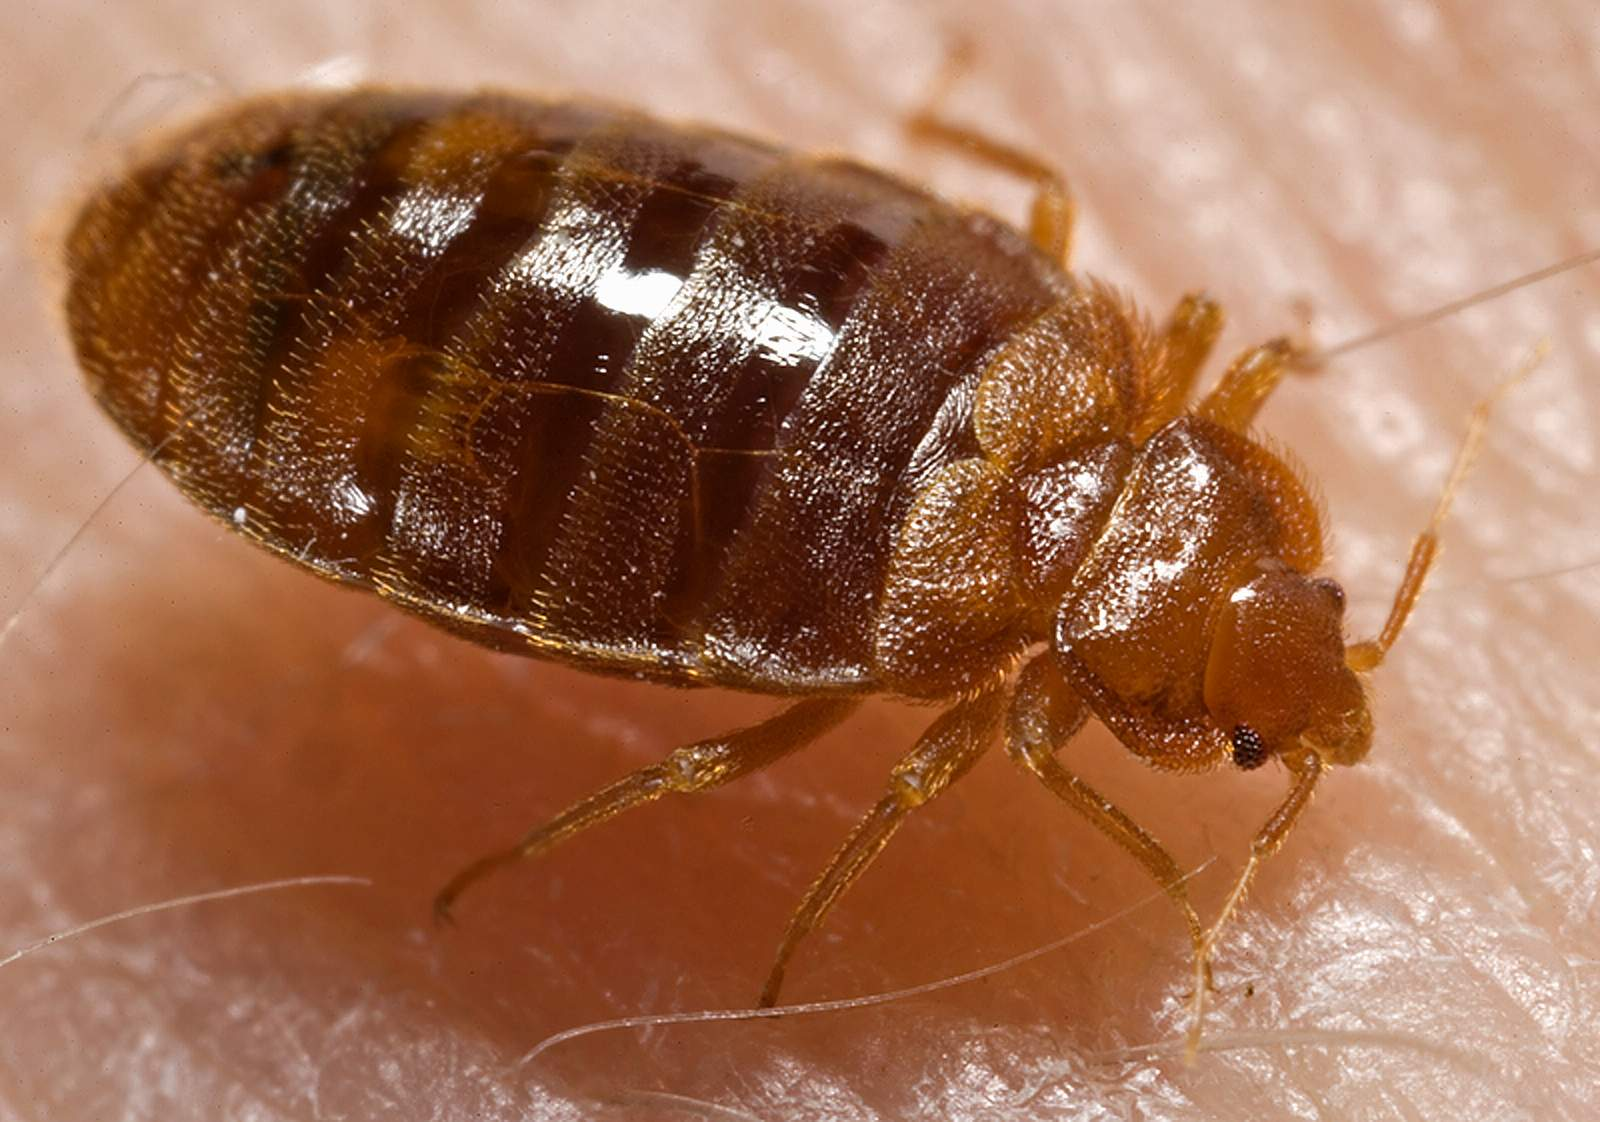 Close-up of a bed bug